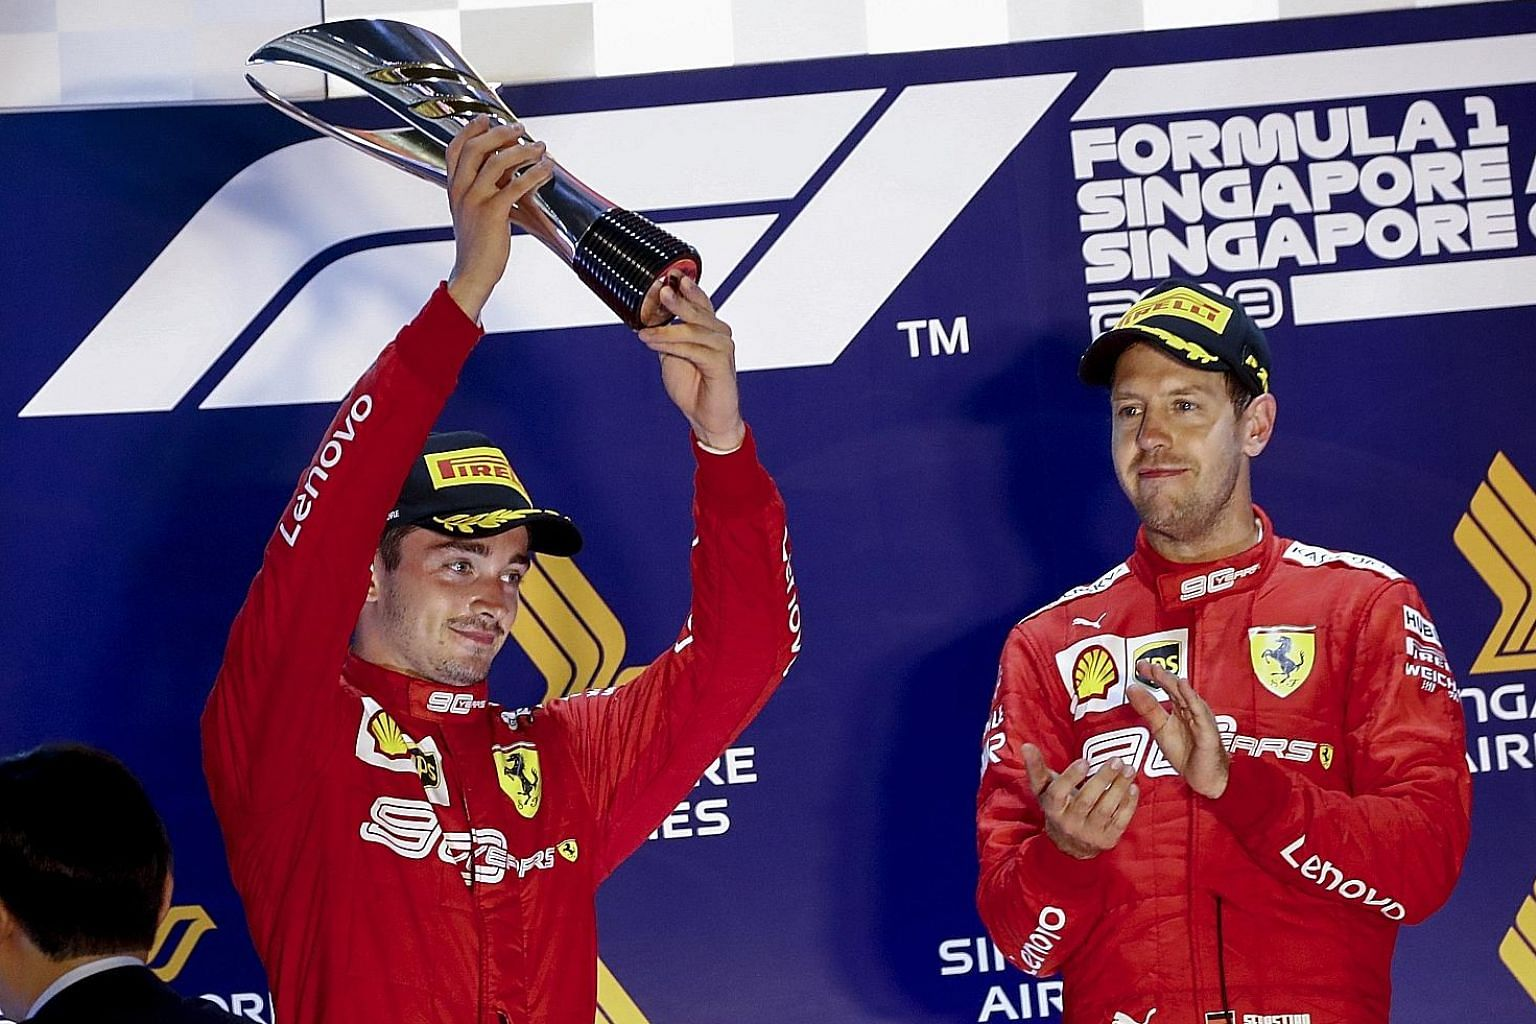 Ferrari driver Charles Leclerc (far left) has six pole positions and two wins this season, outperforming teammate Sebastian Vettel, whose only victory was clinched at the Singapore Grand Prix two weeks ago.